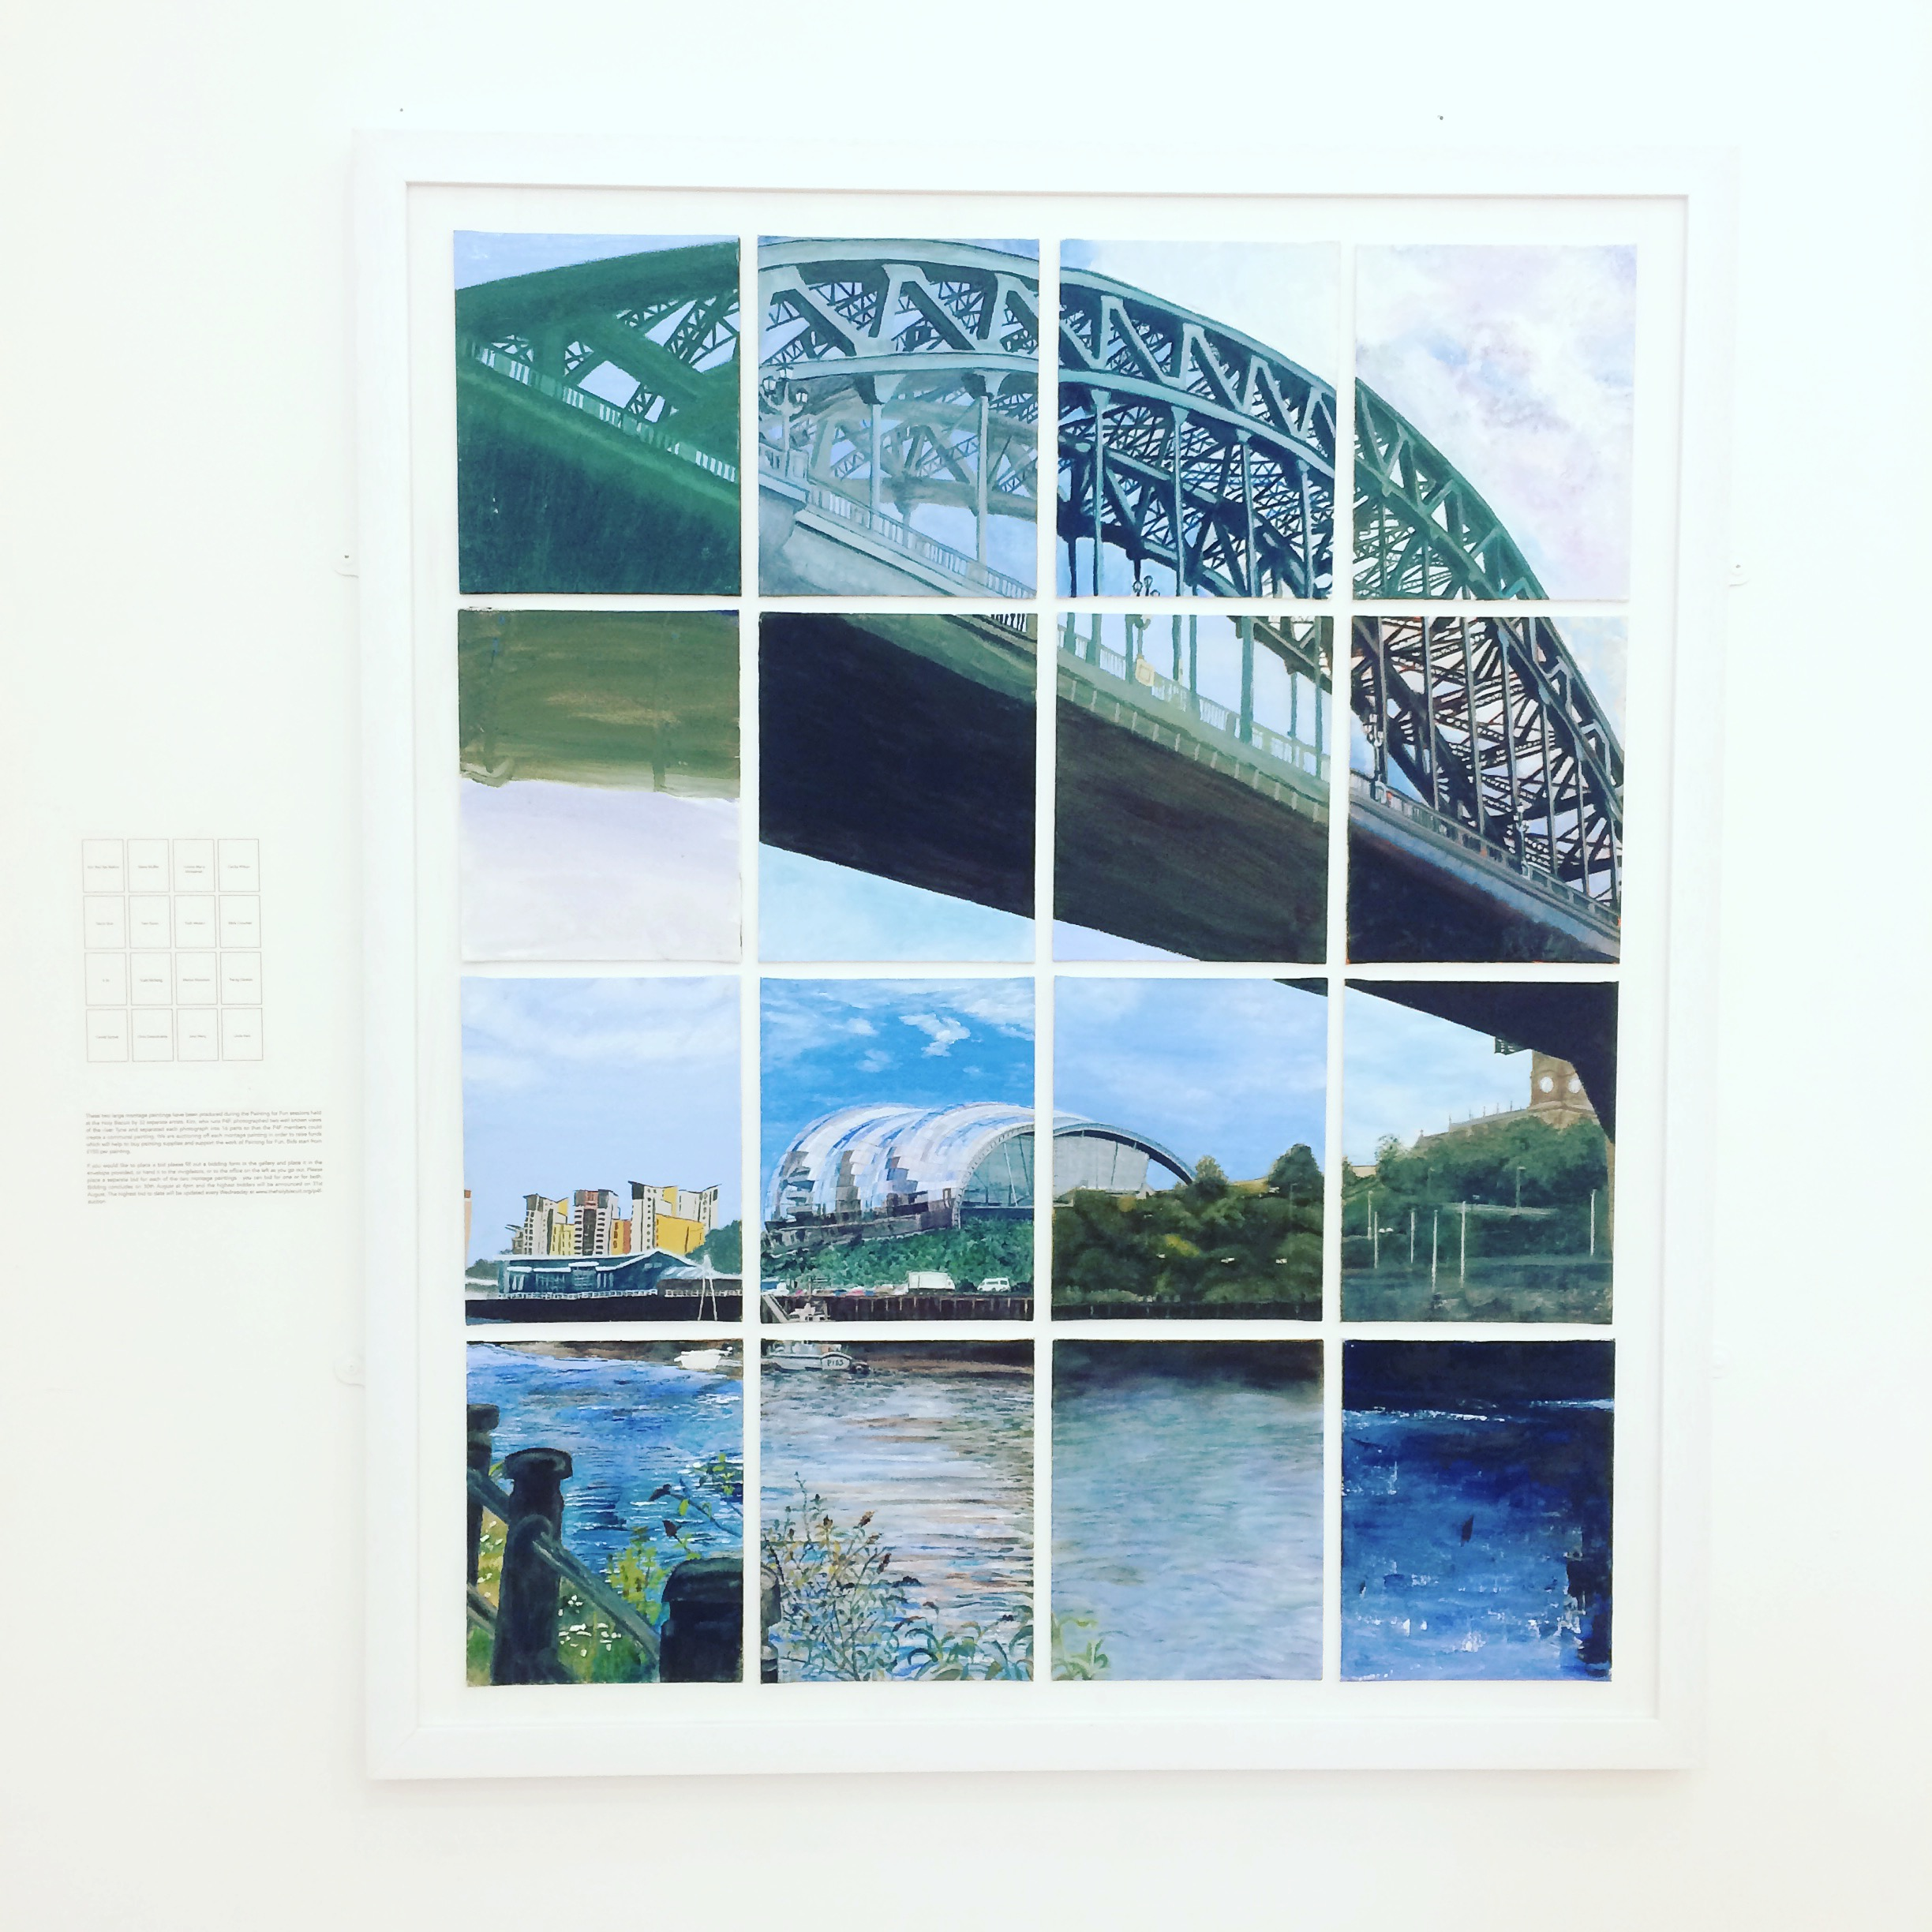 The Sage on the Tyne | Highest bid to date at £200